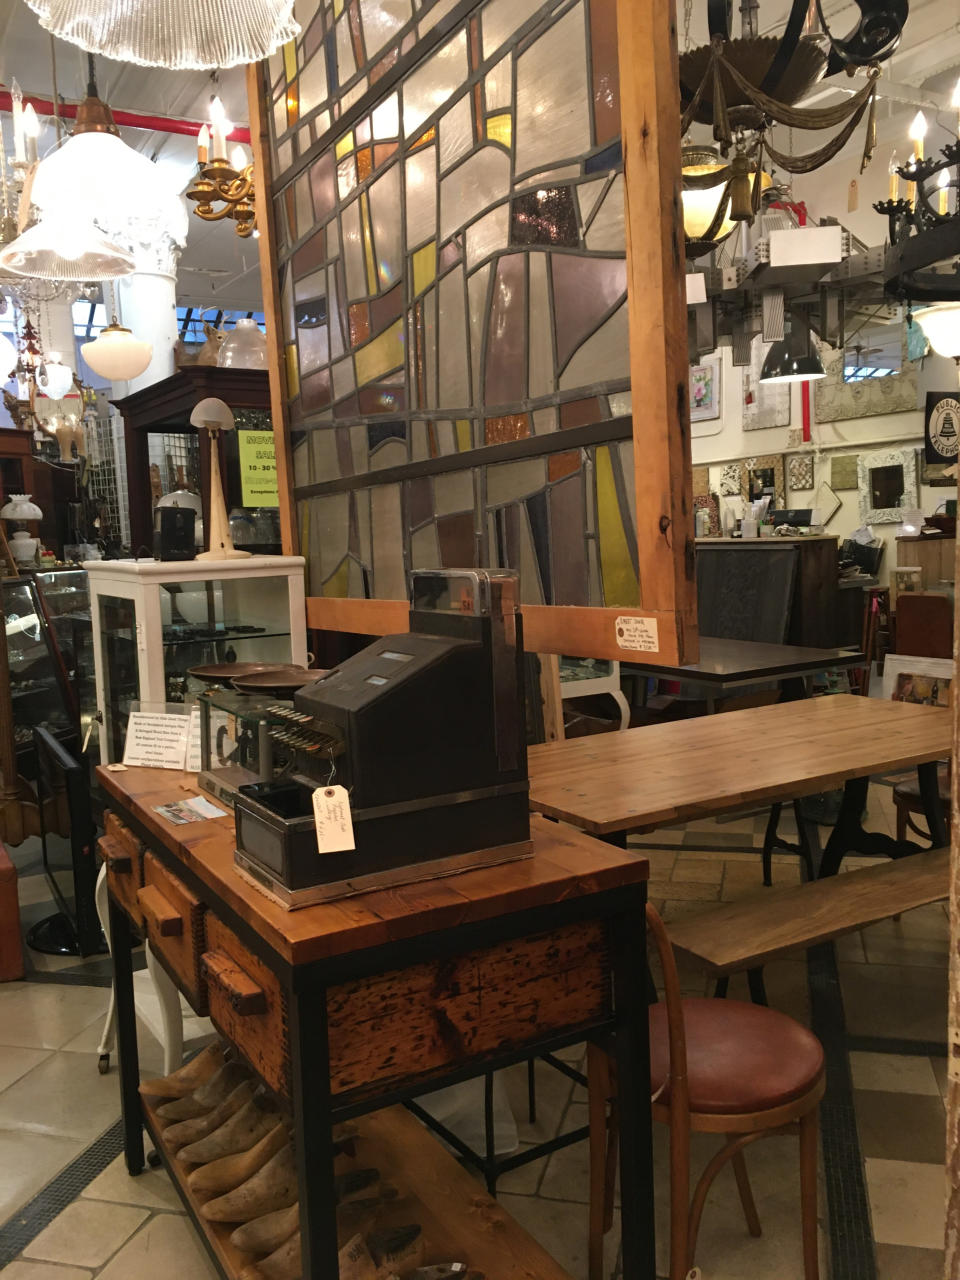 """This Oct. 15, 2019 photo shows various salvaged items for sale at Olde Good Things salvage store in New York. Two of the hottest trends in home decor are sustainability and authenticity. """"It's about both history and sustainability,"""" says Madeline Beauchamp of Olde Good Things, one of the oldest architectural salvage businesses in the country, with one shop in Los Angeles, another in Scranton, Pennsylvania, two stores in New York, and a flagship store to open soon in Midtown Manhattan. (Katherine Roth via AP)"""